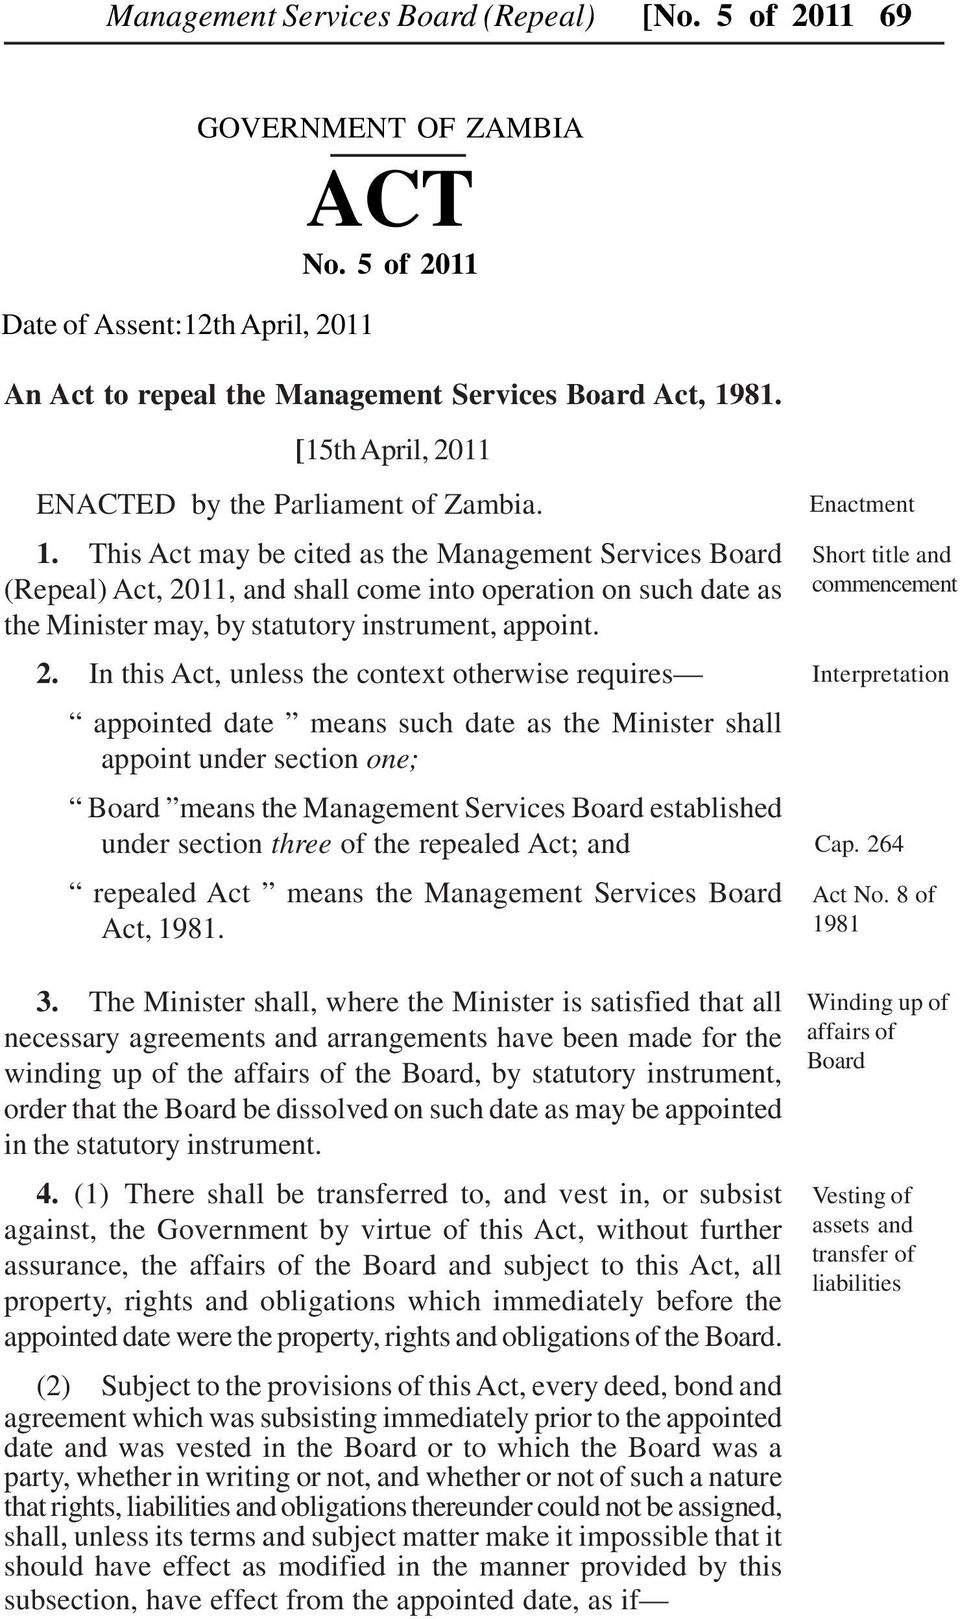 This Act may be cited as the Management Services Board (Repeal) Act, 20